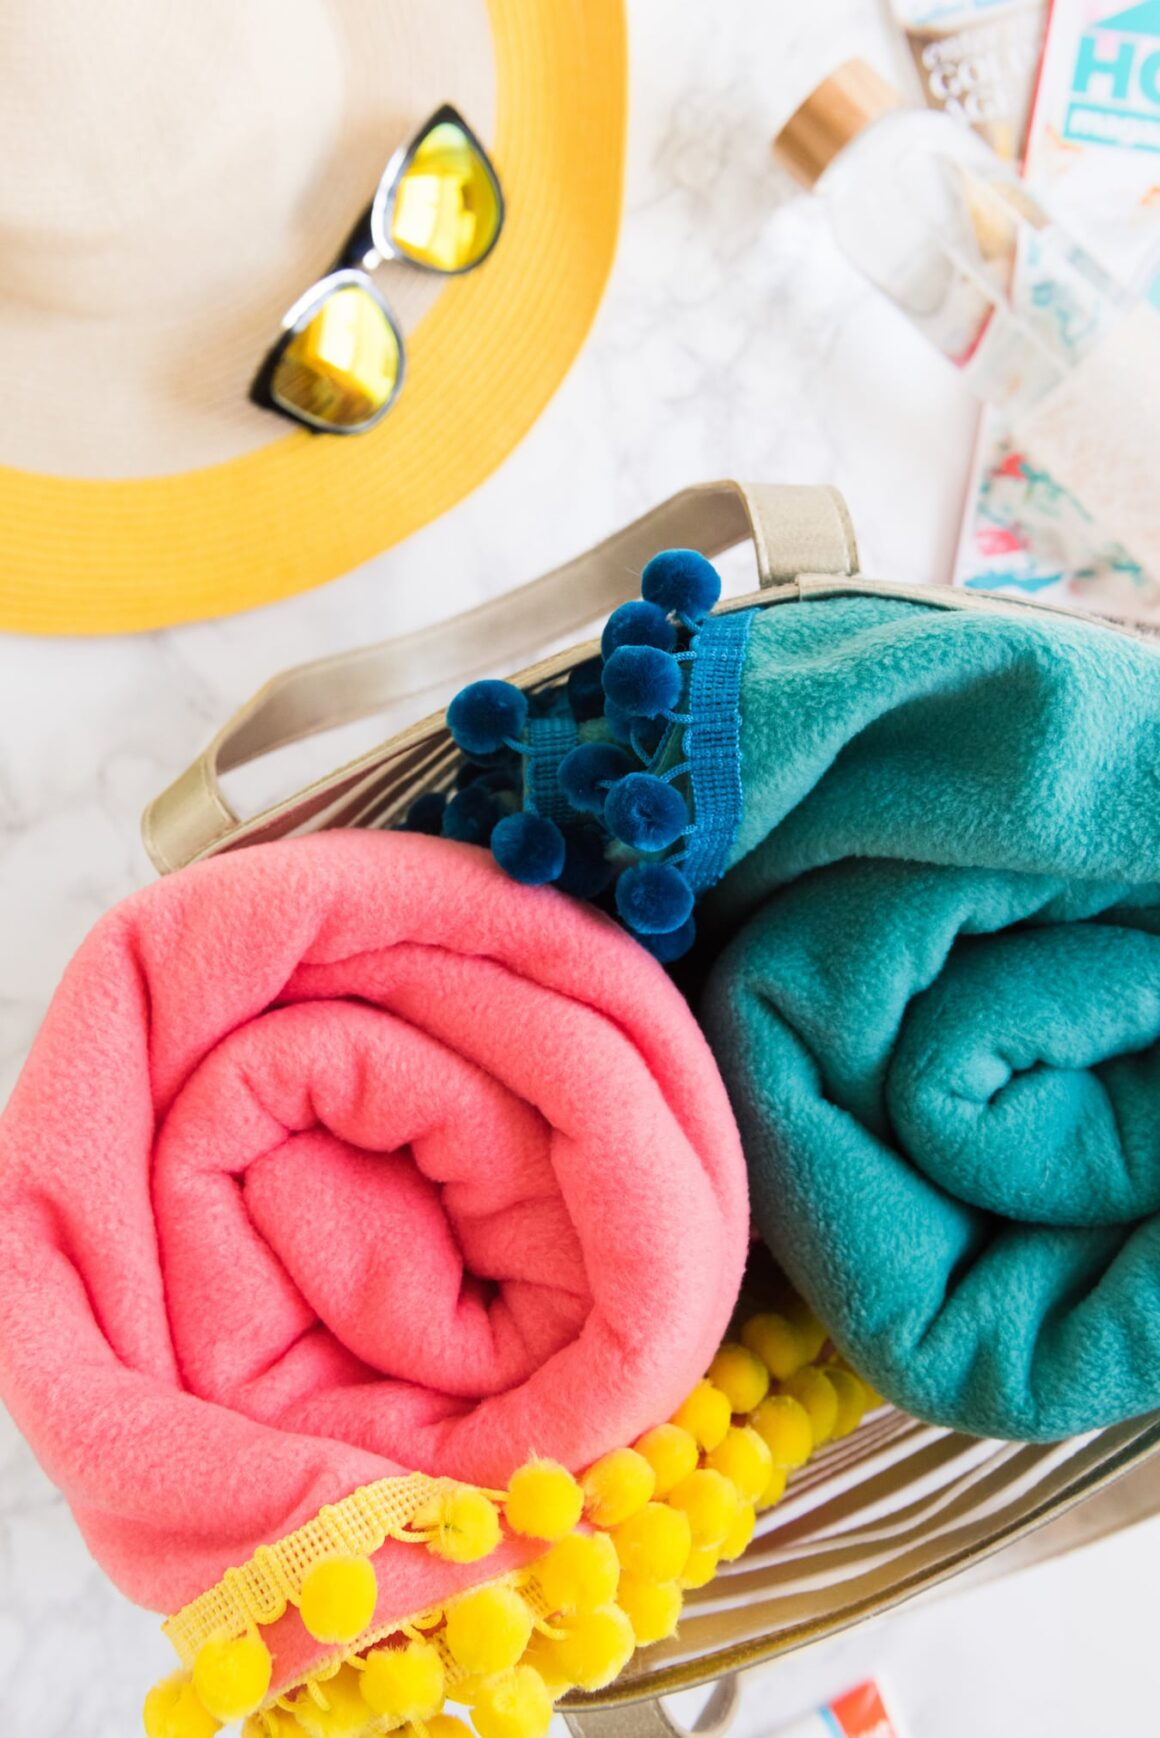 DIY Gifts for Mom: DIY No Sew Blanket